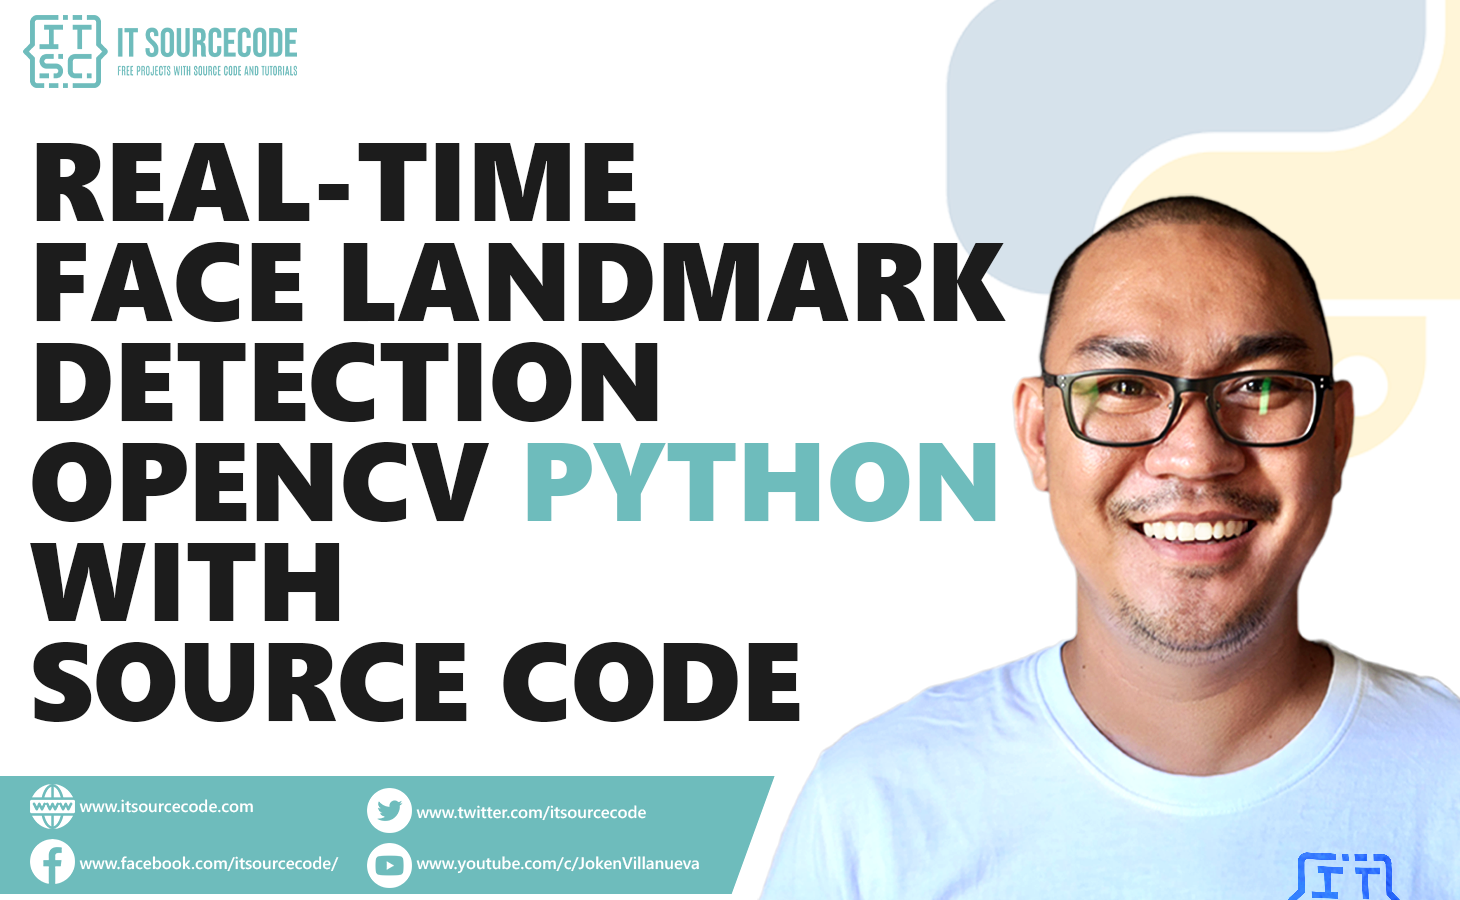 Real-Time Face Landmark Detection OpenCV Python With Source Code